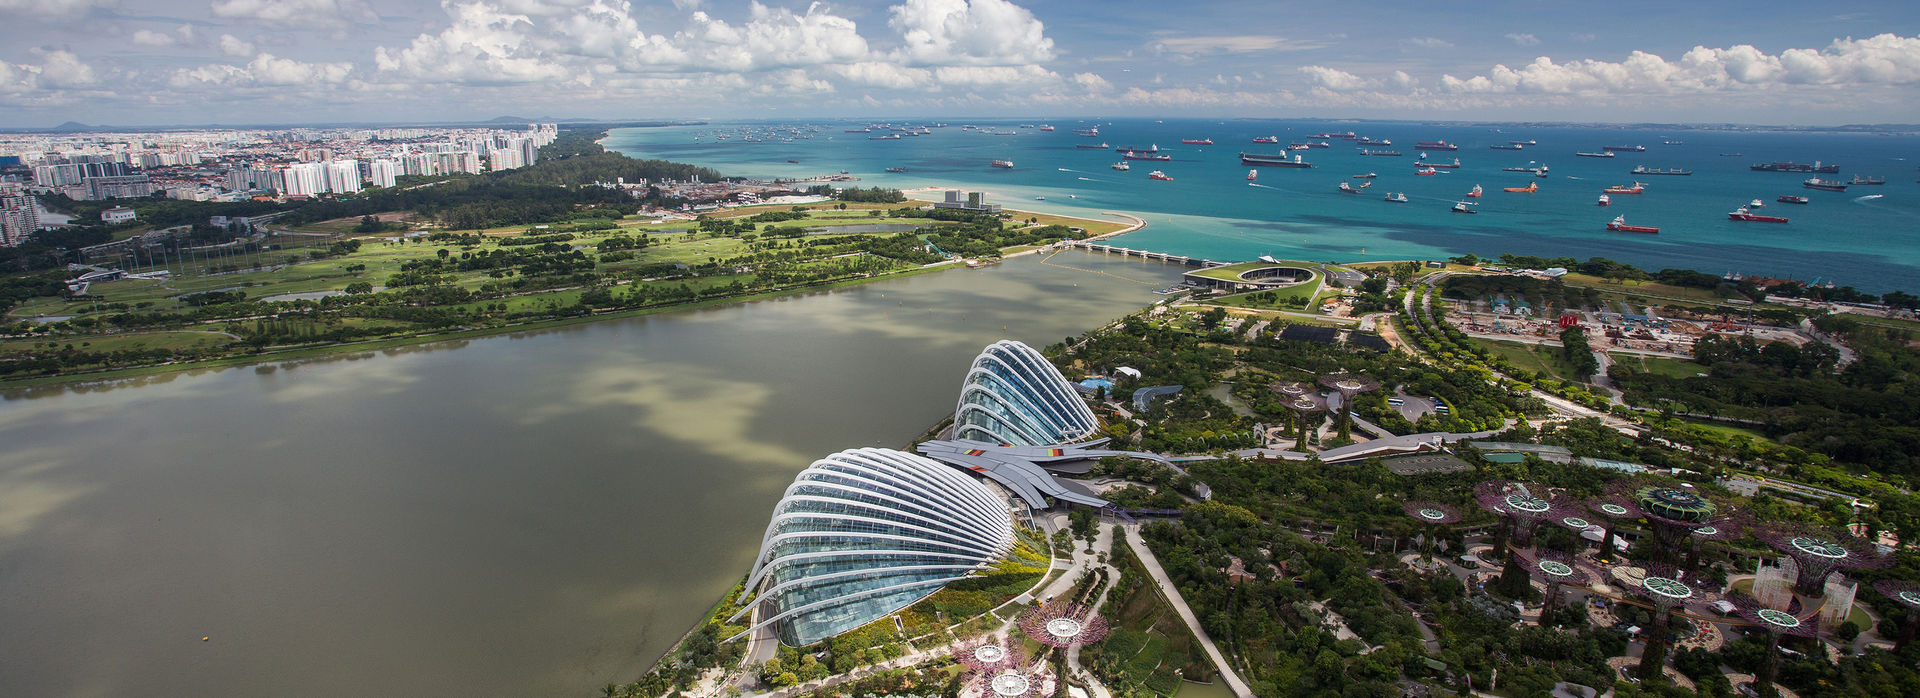 The best time to visit Singapore & what to do when you get there